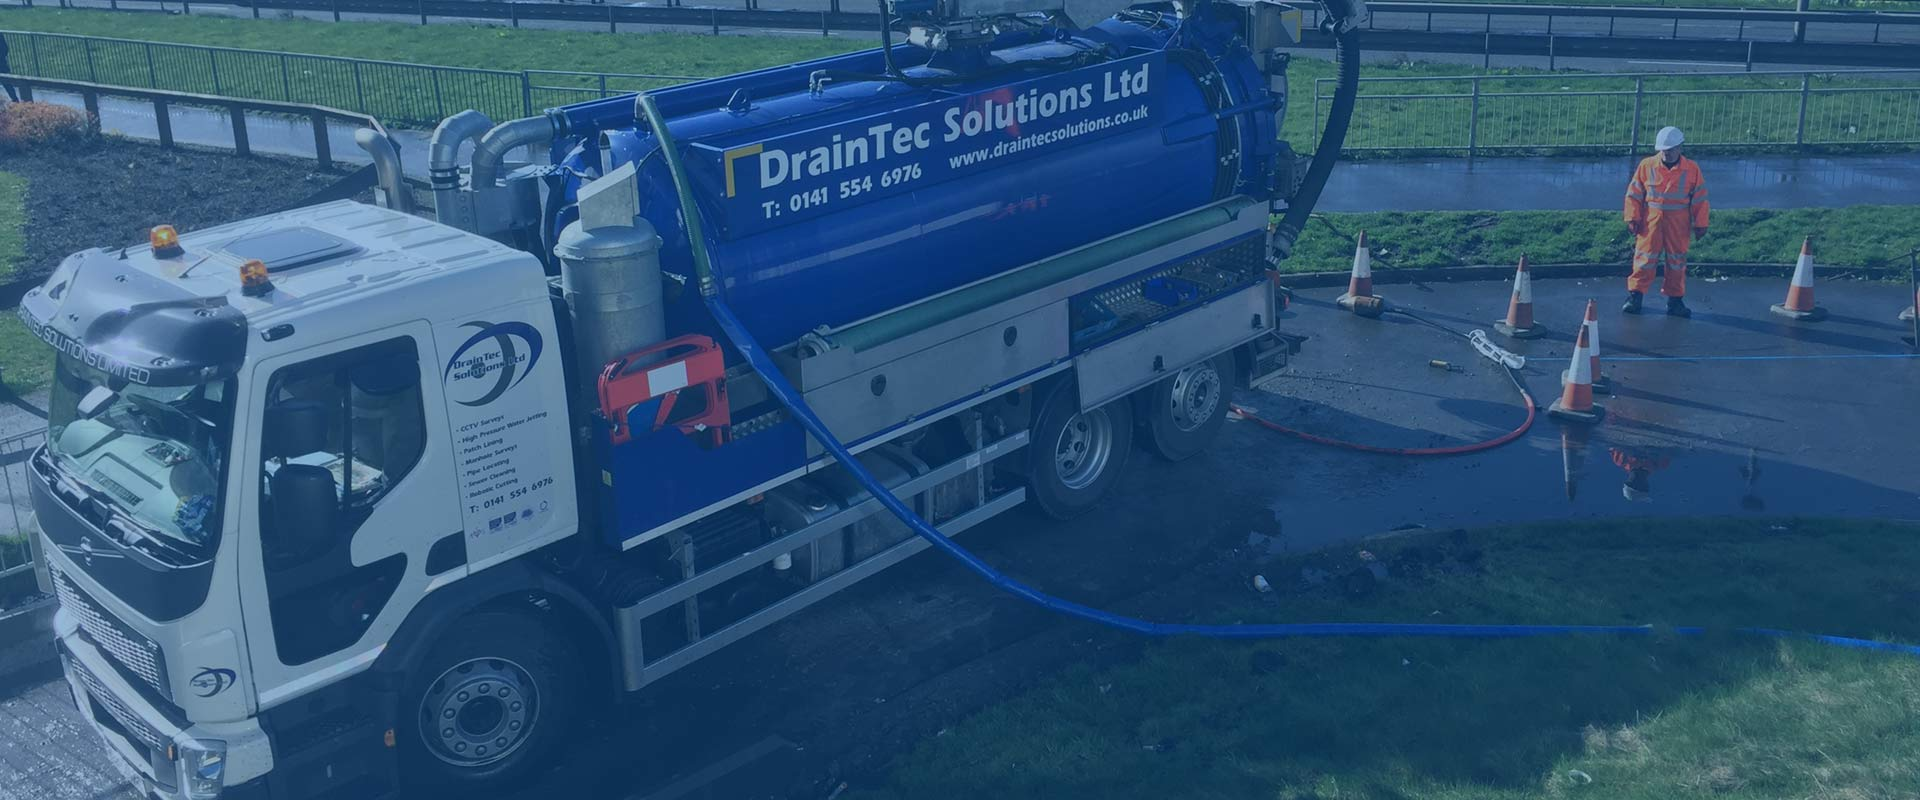 DrainTec Solutions - Professional Drain Cleaning in Glasgow, Scotland